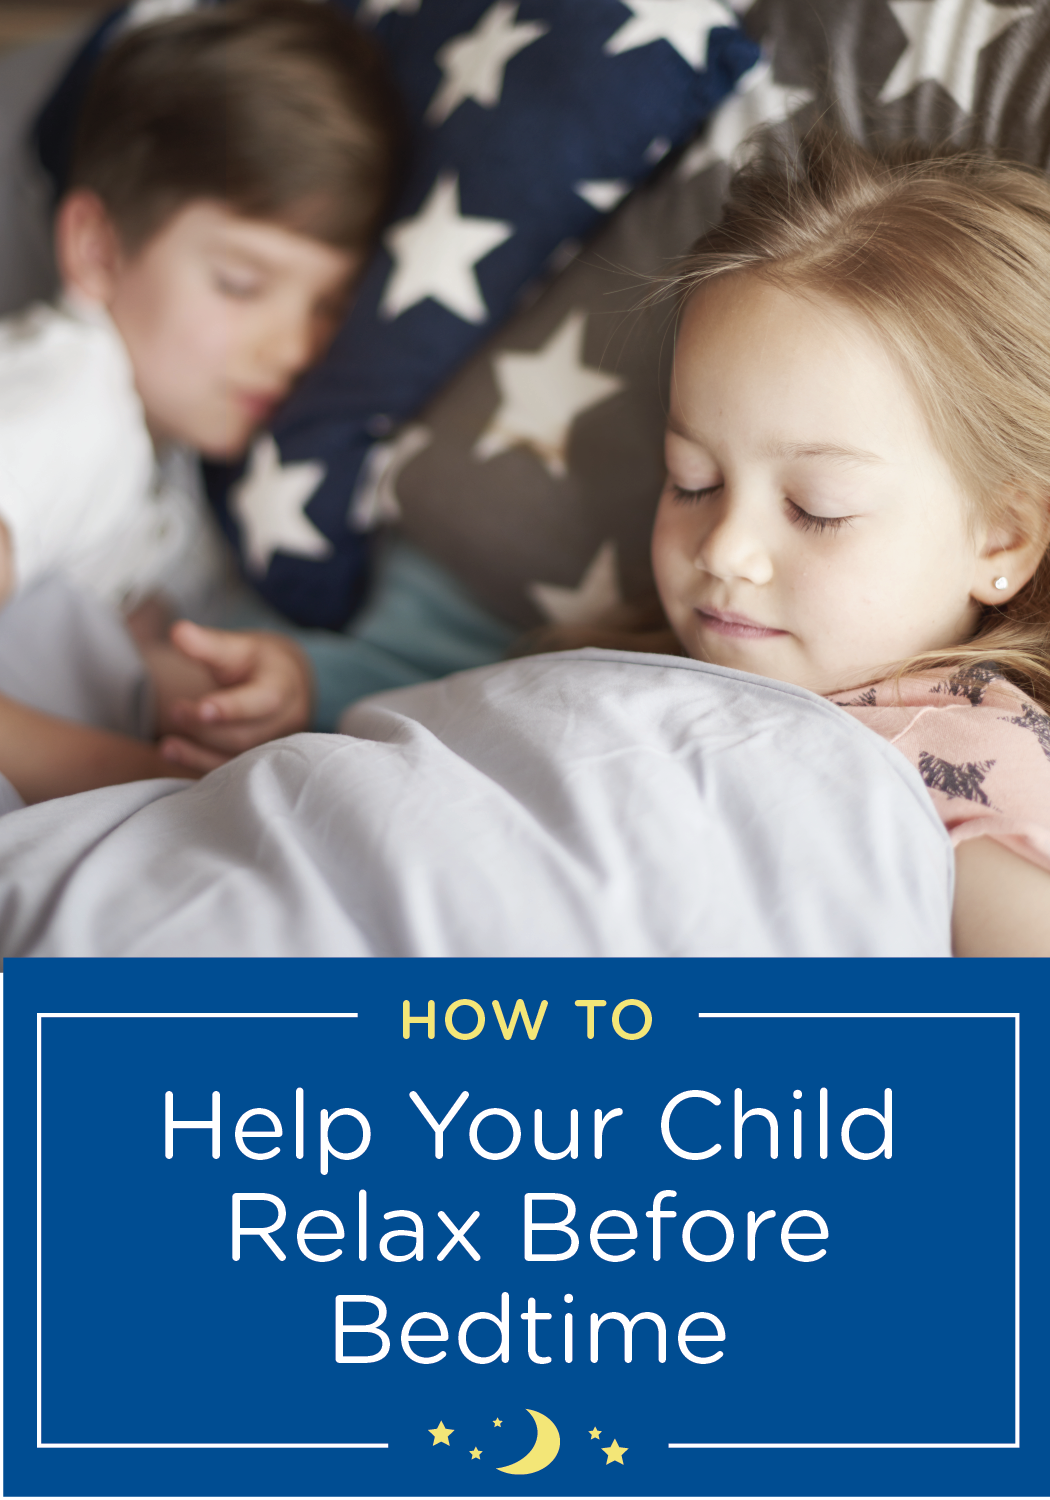 A Simple Bedtime Relaxation Script For Children